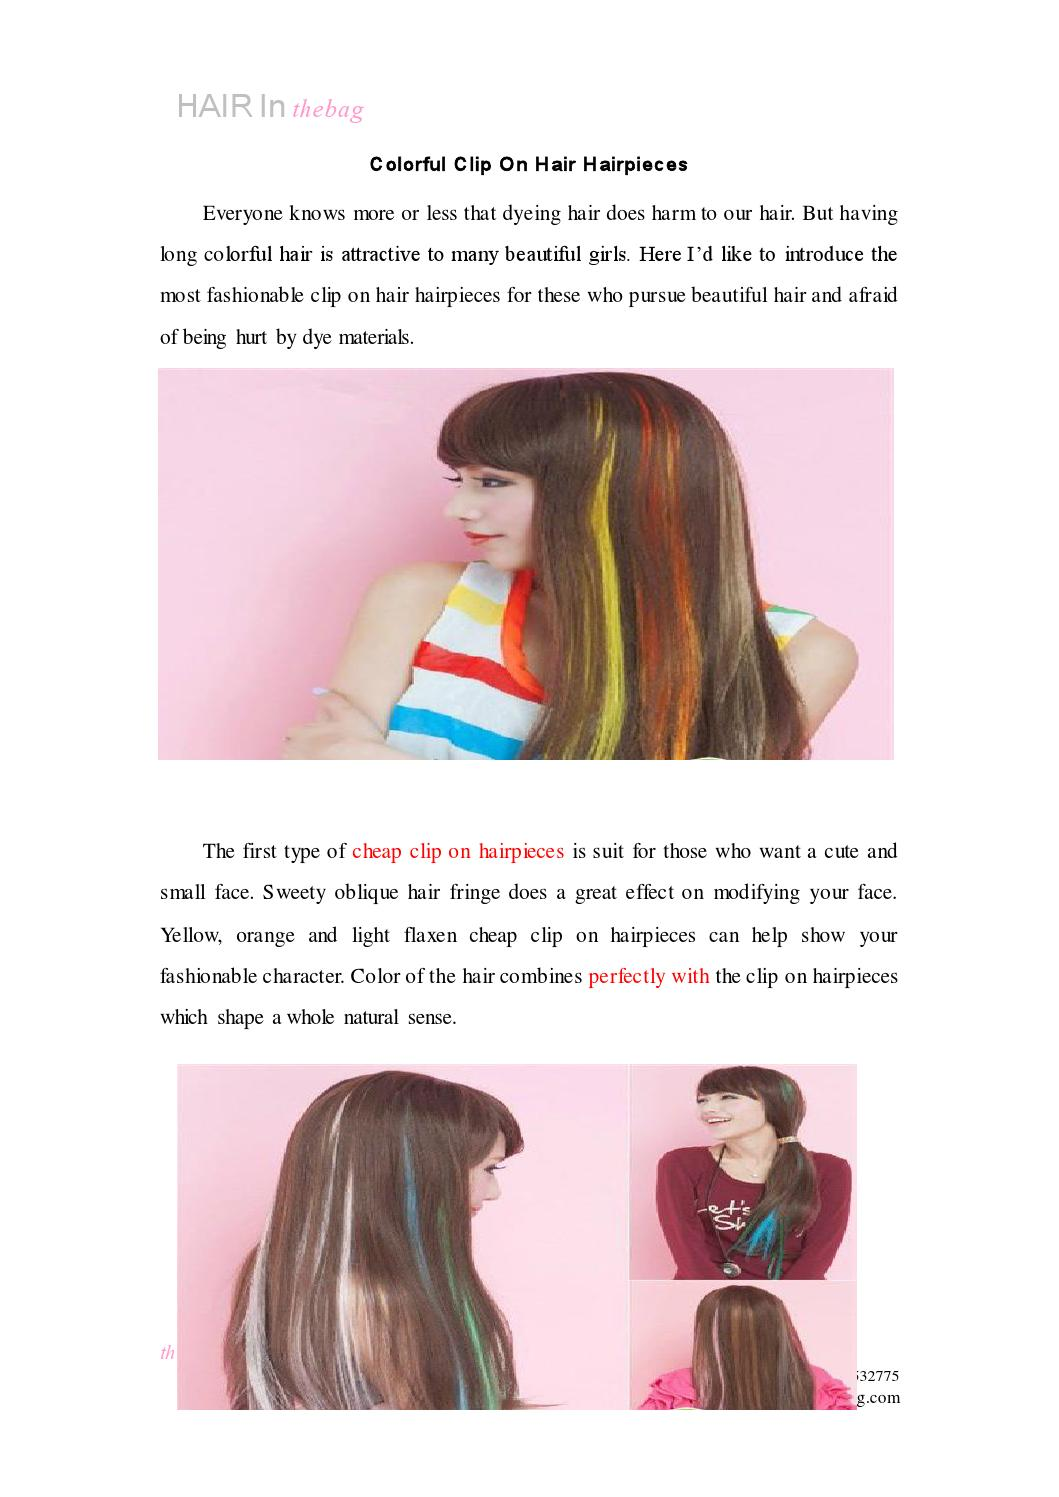 Colorful Clip On Hair Hairpieces By Globeking Issuu